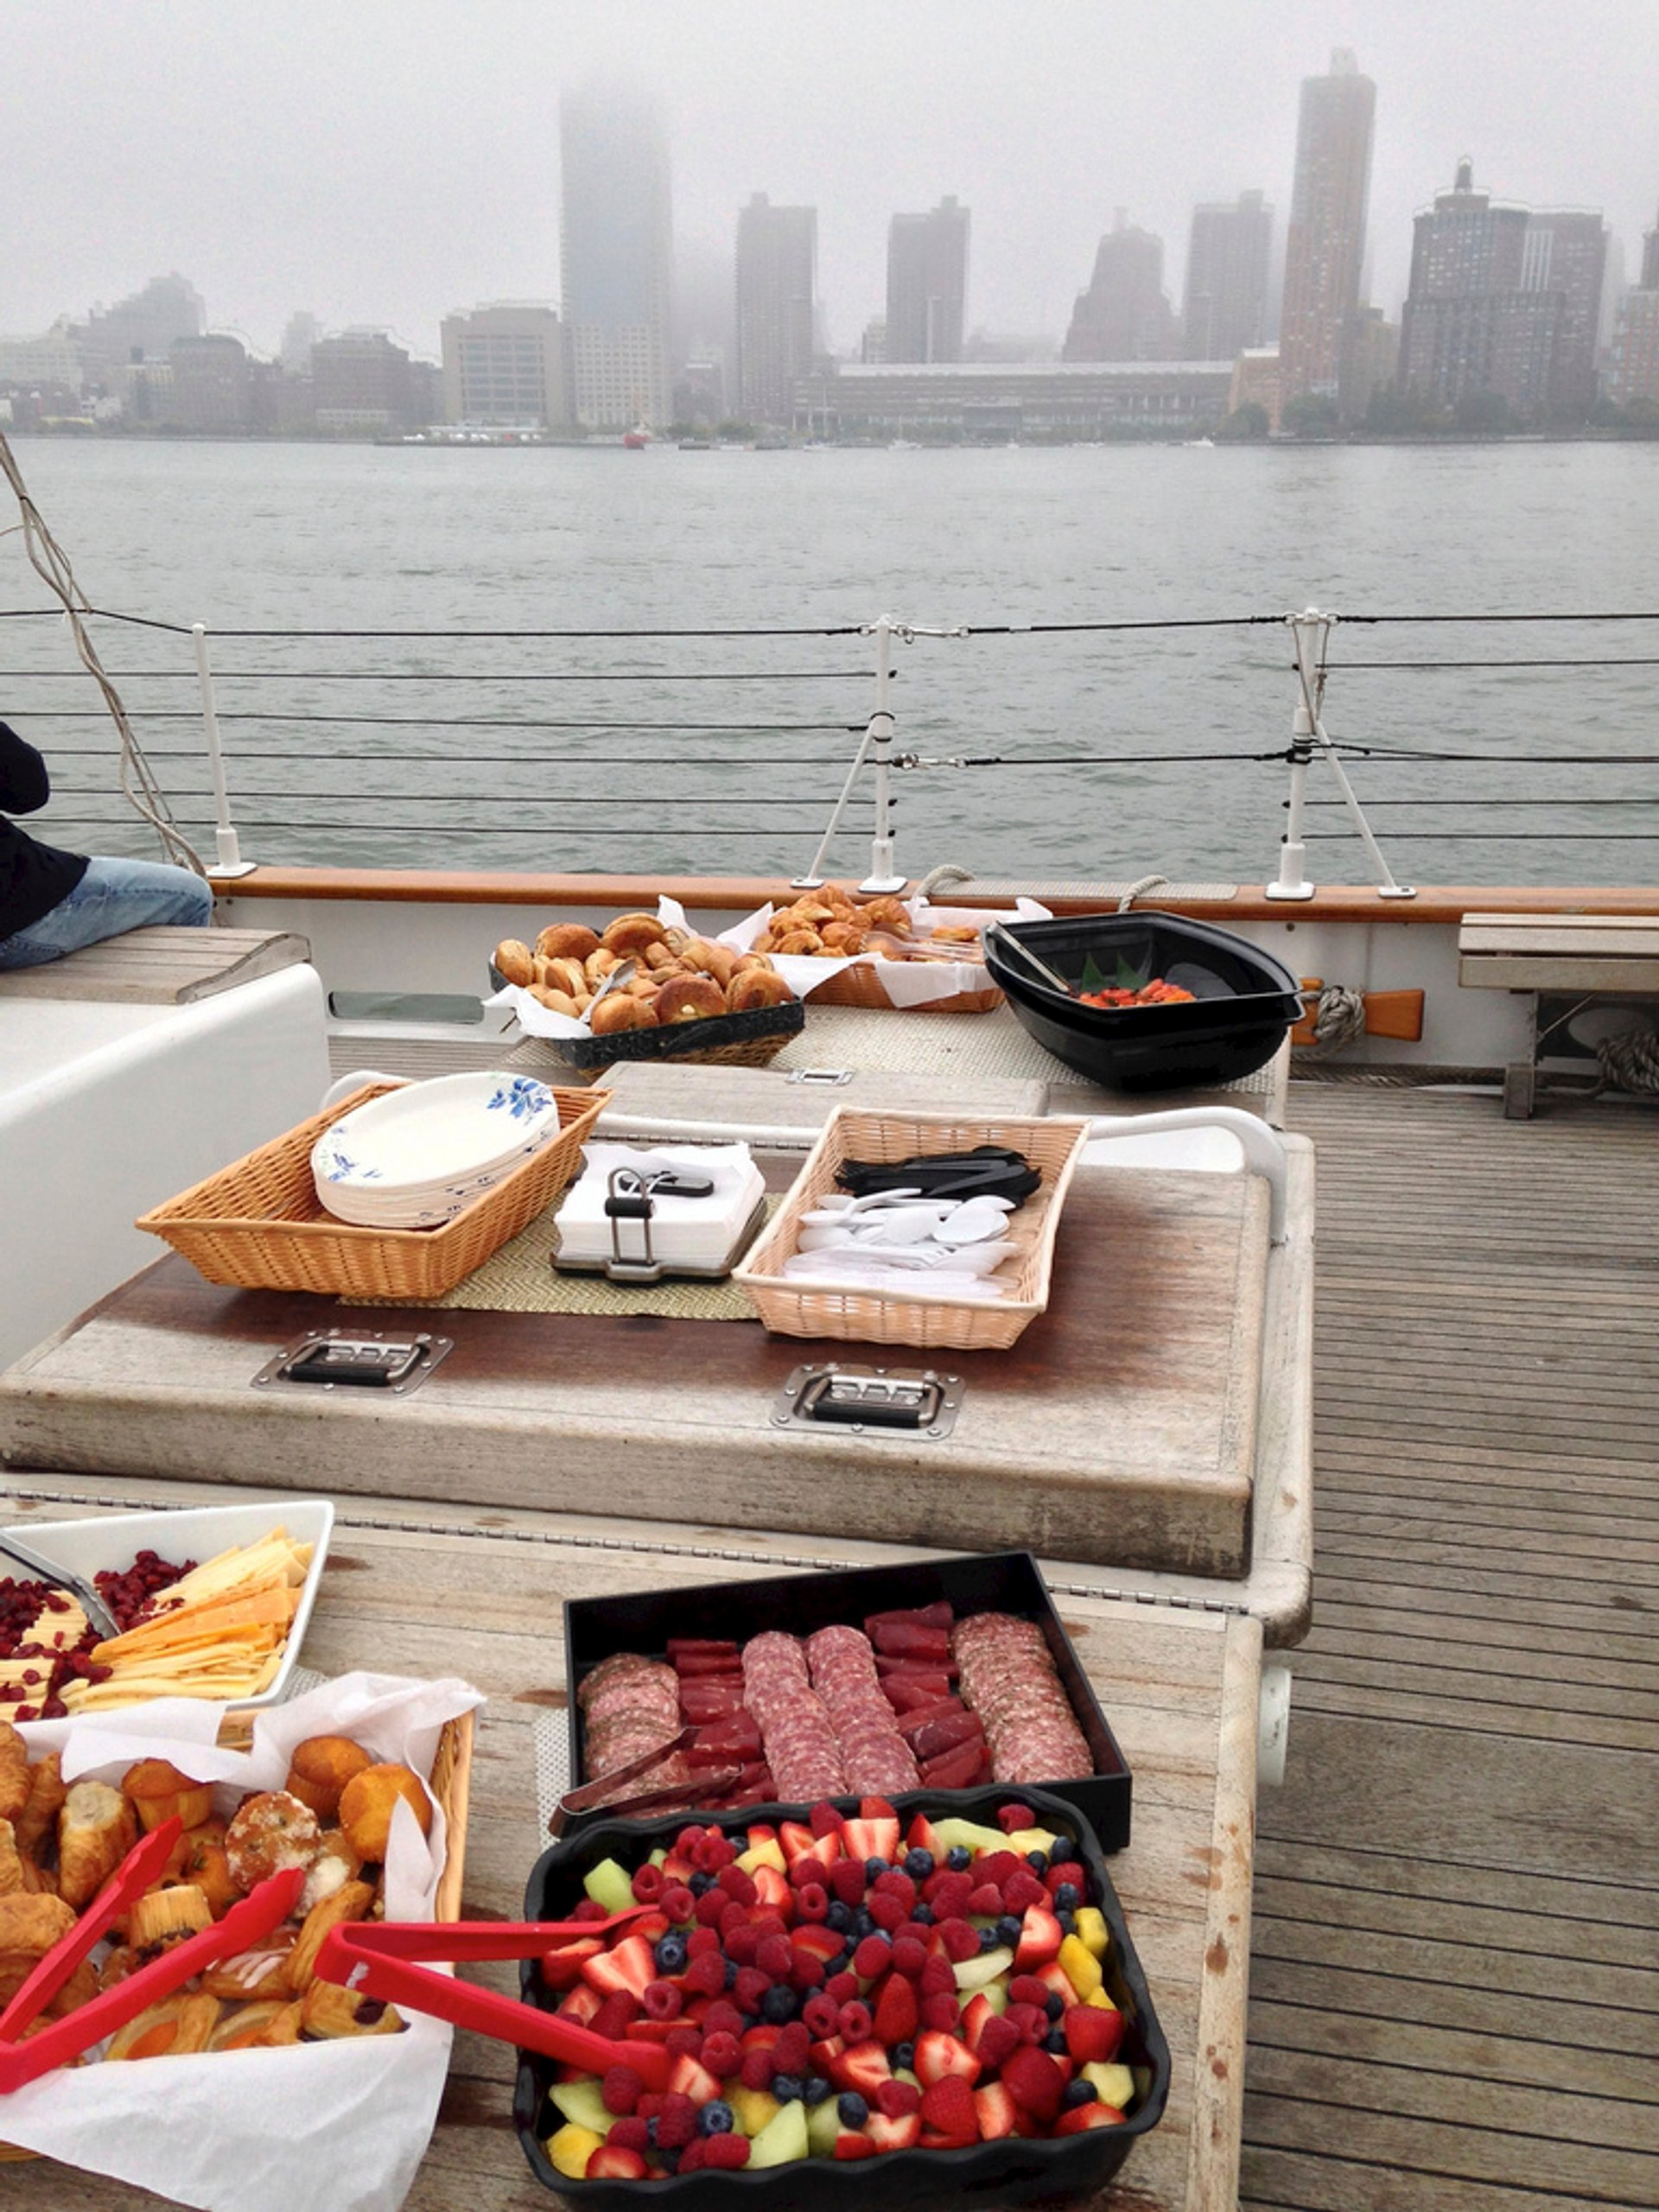 Brunch on a boat 2020